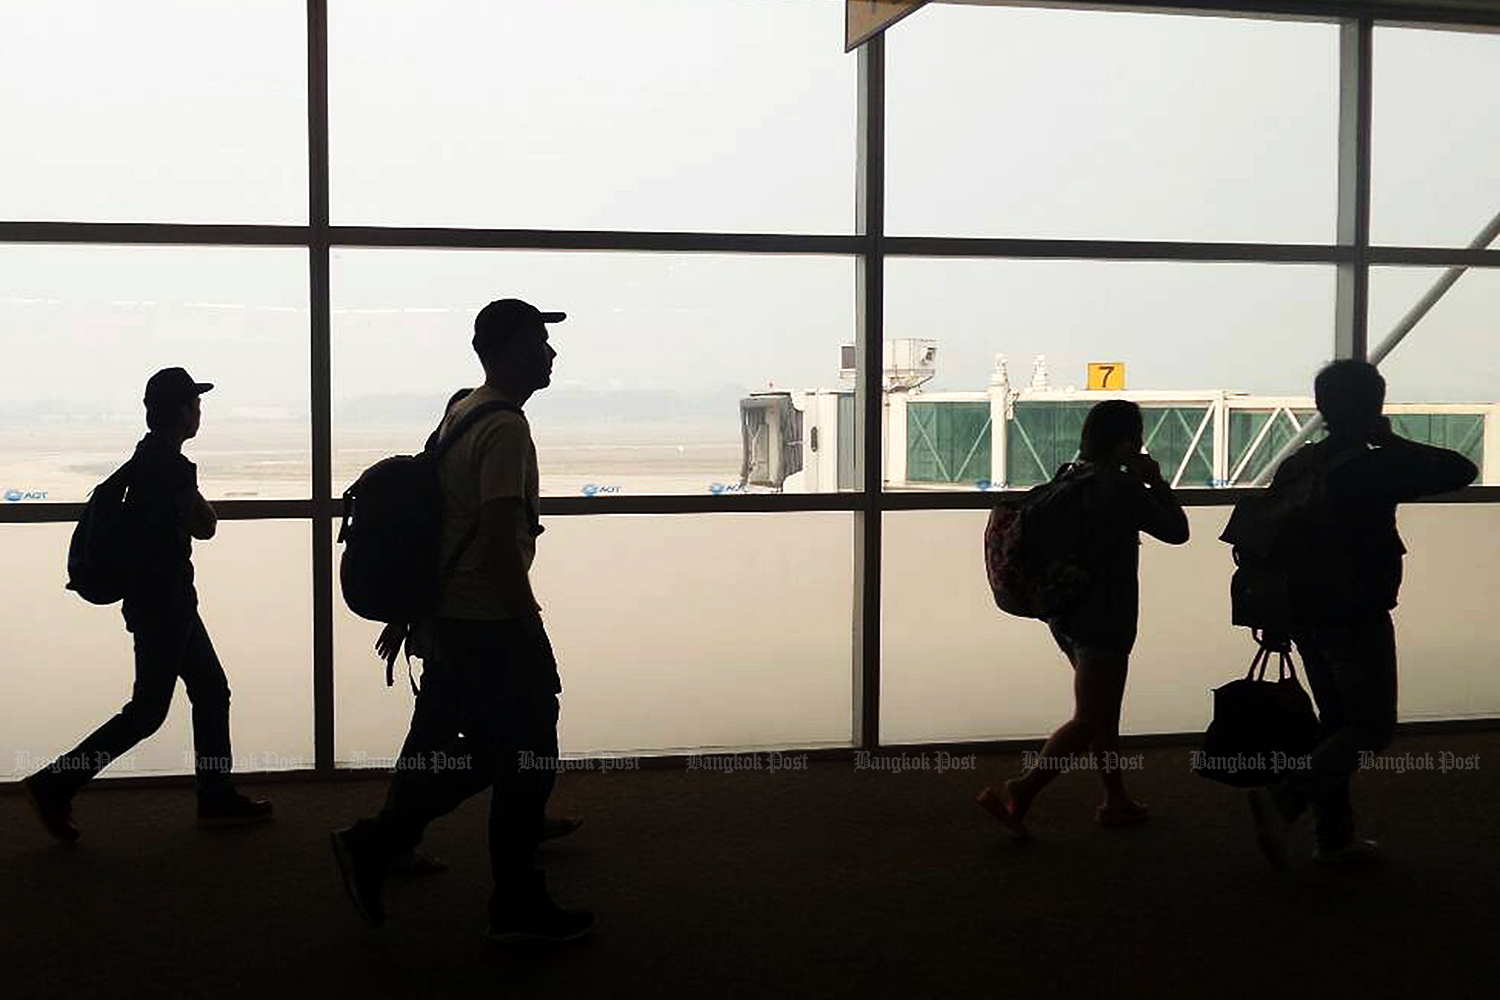 Samtel aims to raise revenue derived from airport digital solutions. (Bangkok Post file photo)